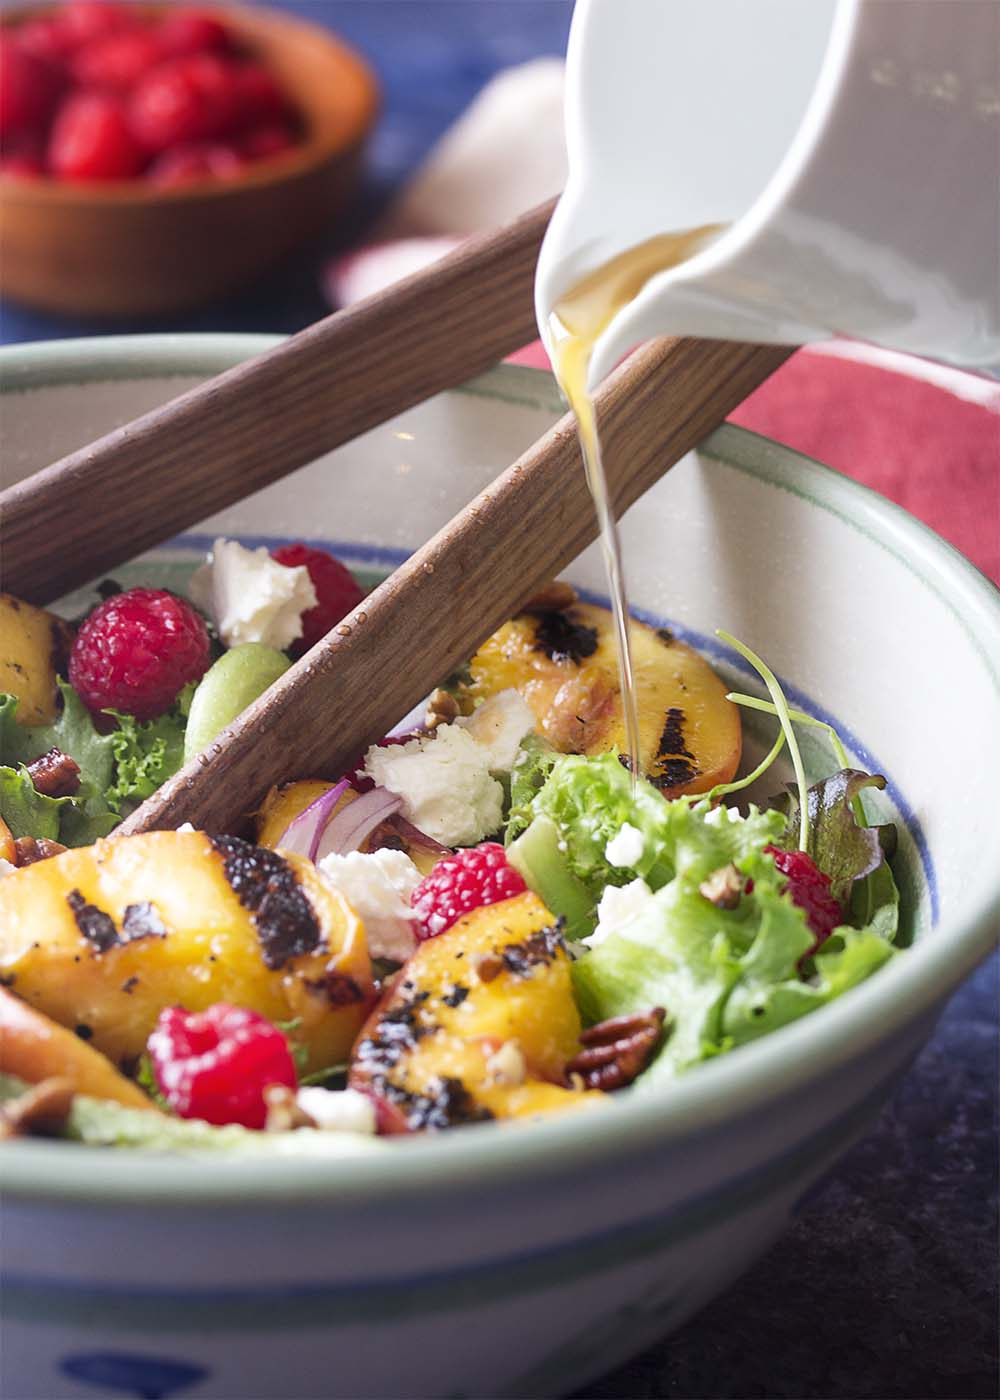 Pouring maple vinaigrette dressing into a serving bowl of sald with mixed greens, berries, and grilled peaches.